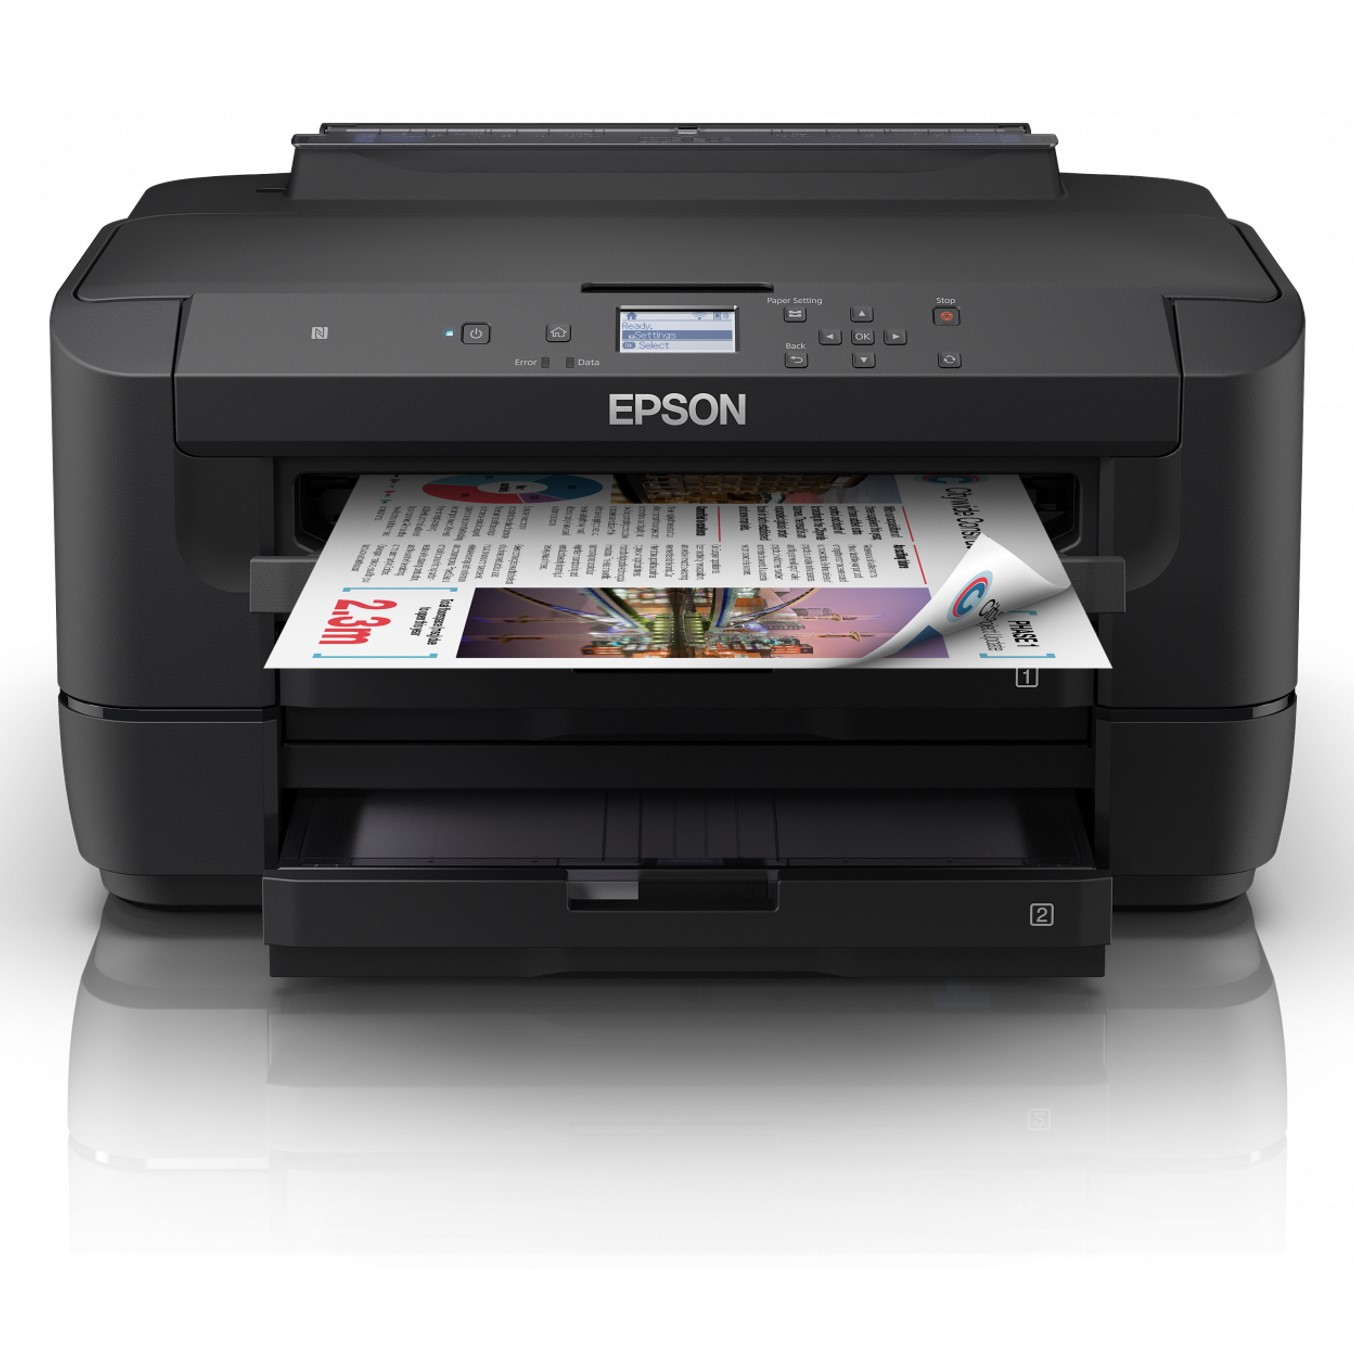 IMPRESORA EPSON INYECCION COLOR WF-7210DTW A3- 32PPM- USB- RED- WIFI- WIFI DIRECT- NFC- DUPLEX IMPRESION- DOS BANDEJAS A3